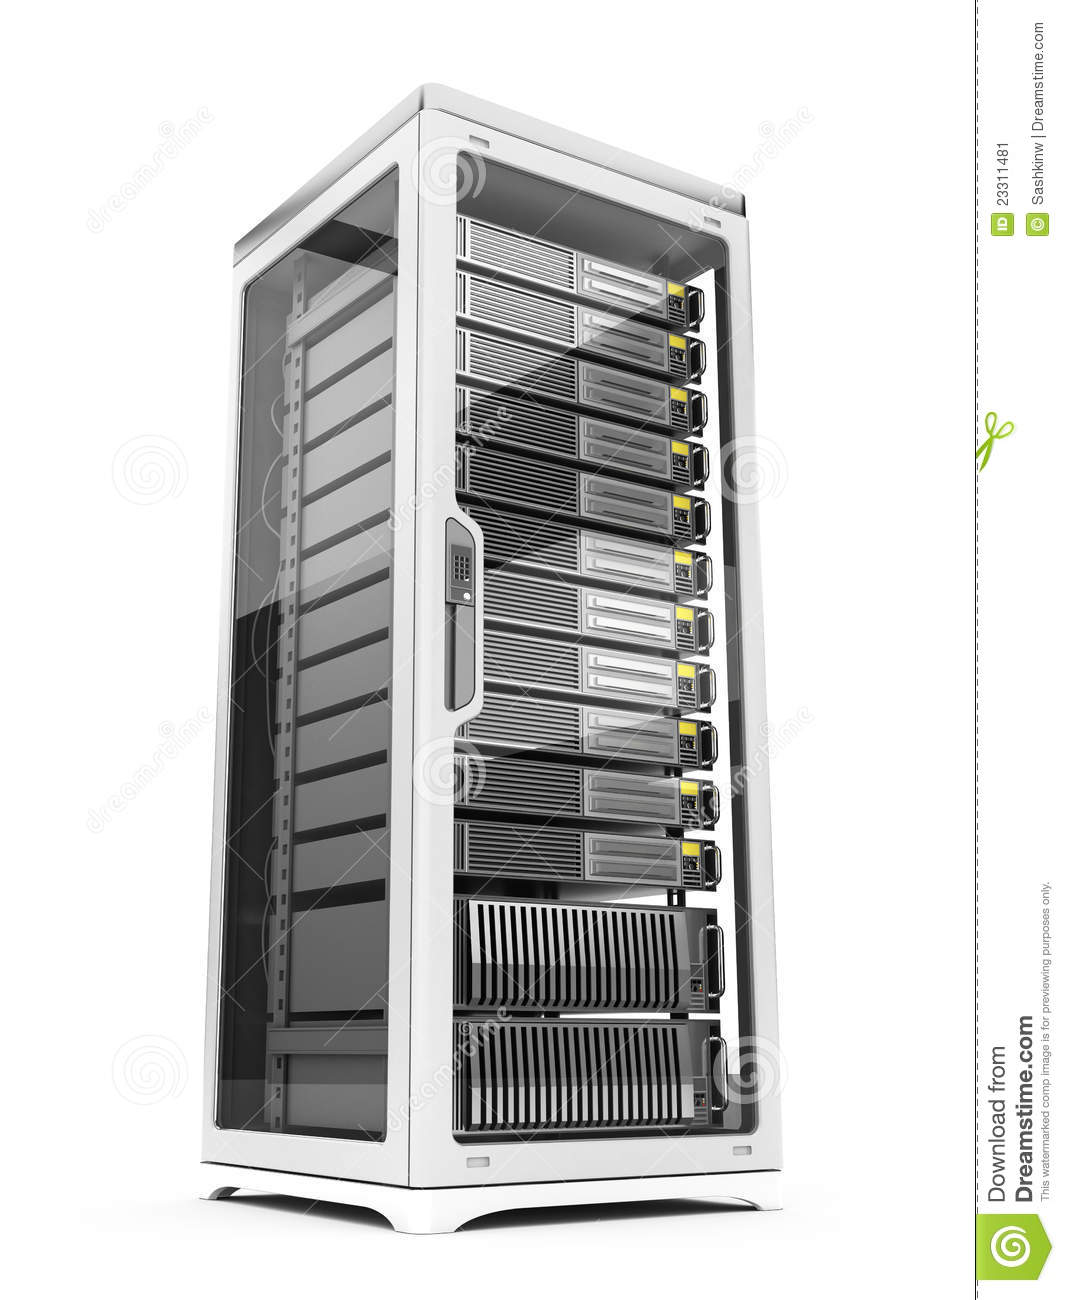 computer rack clip art - photo #17